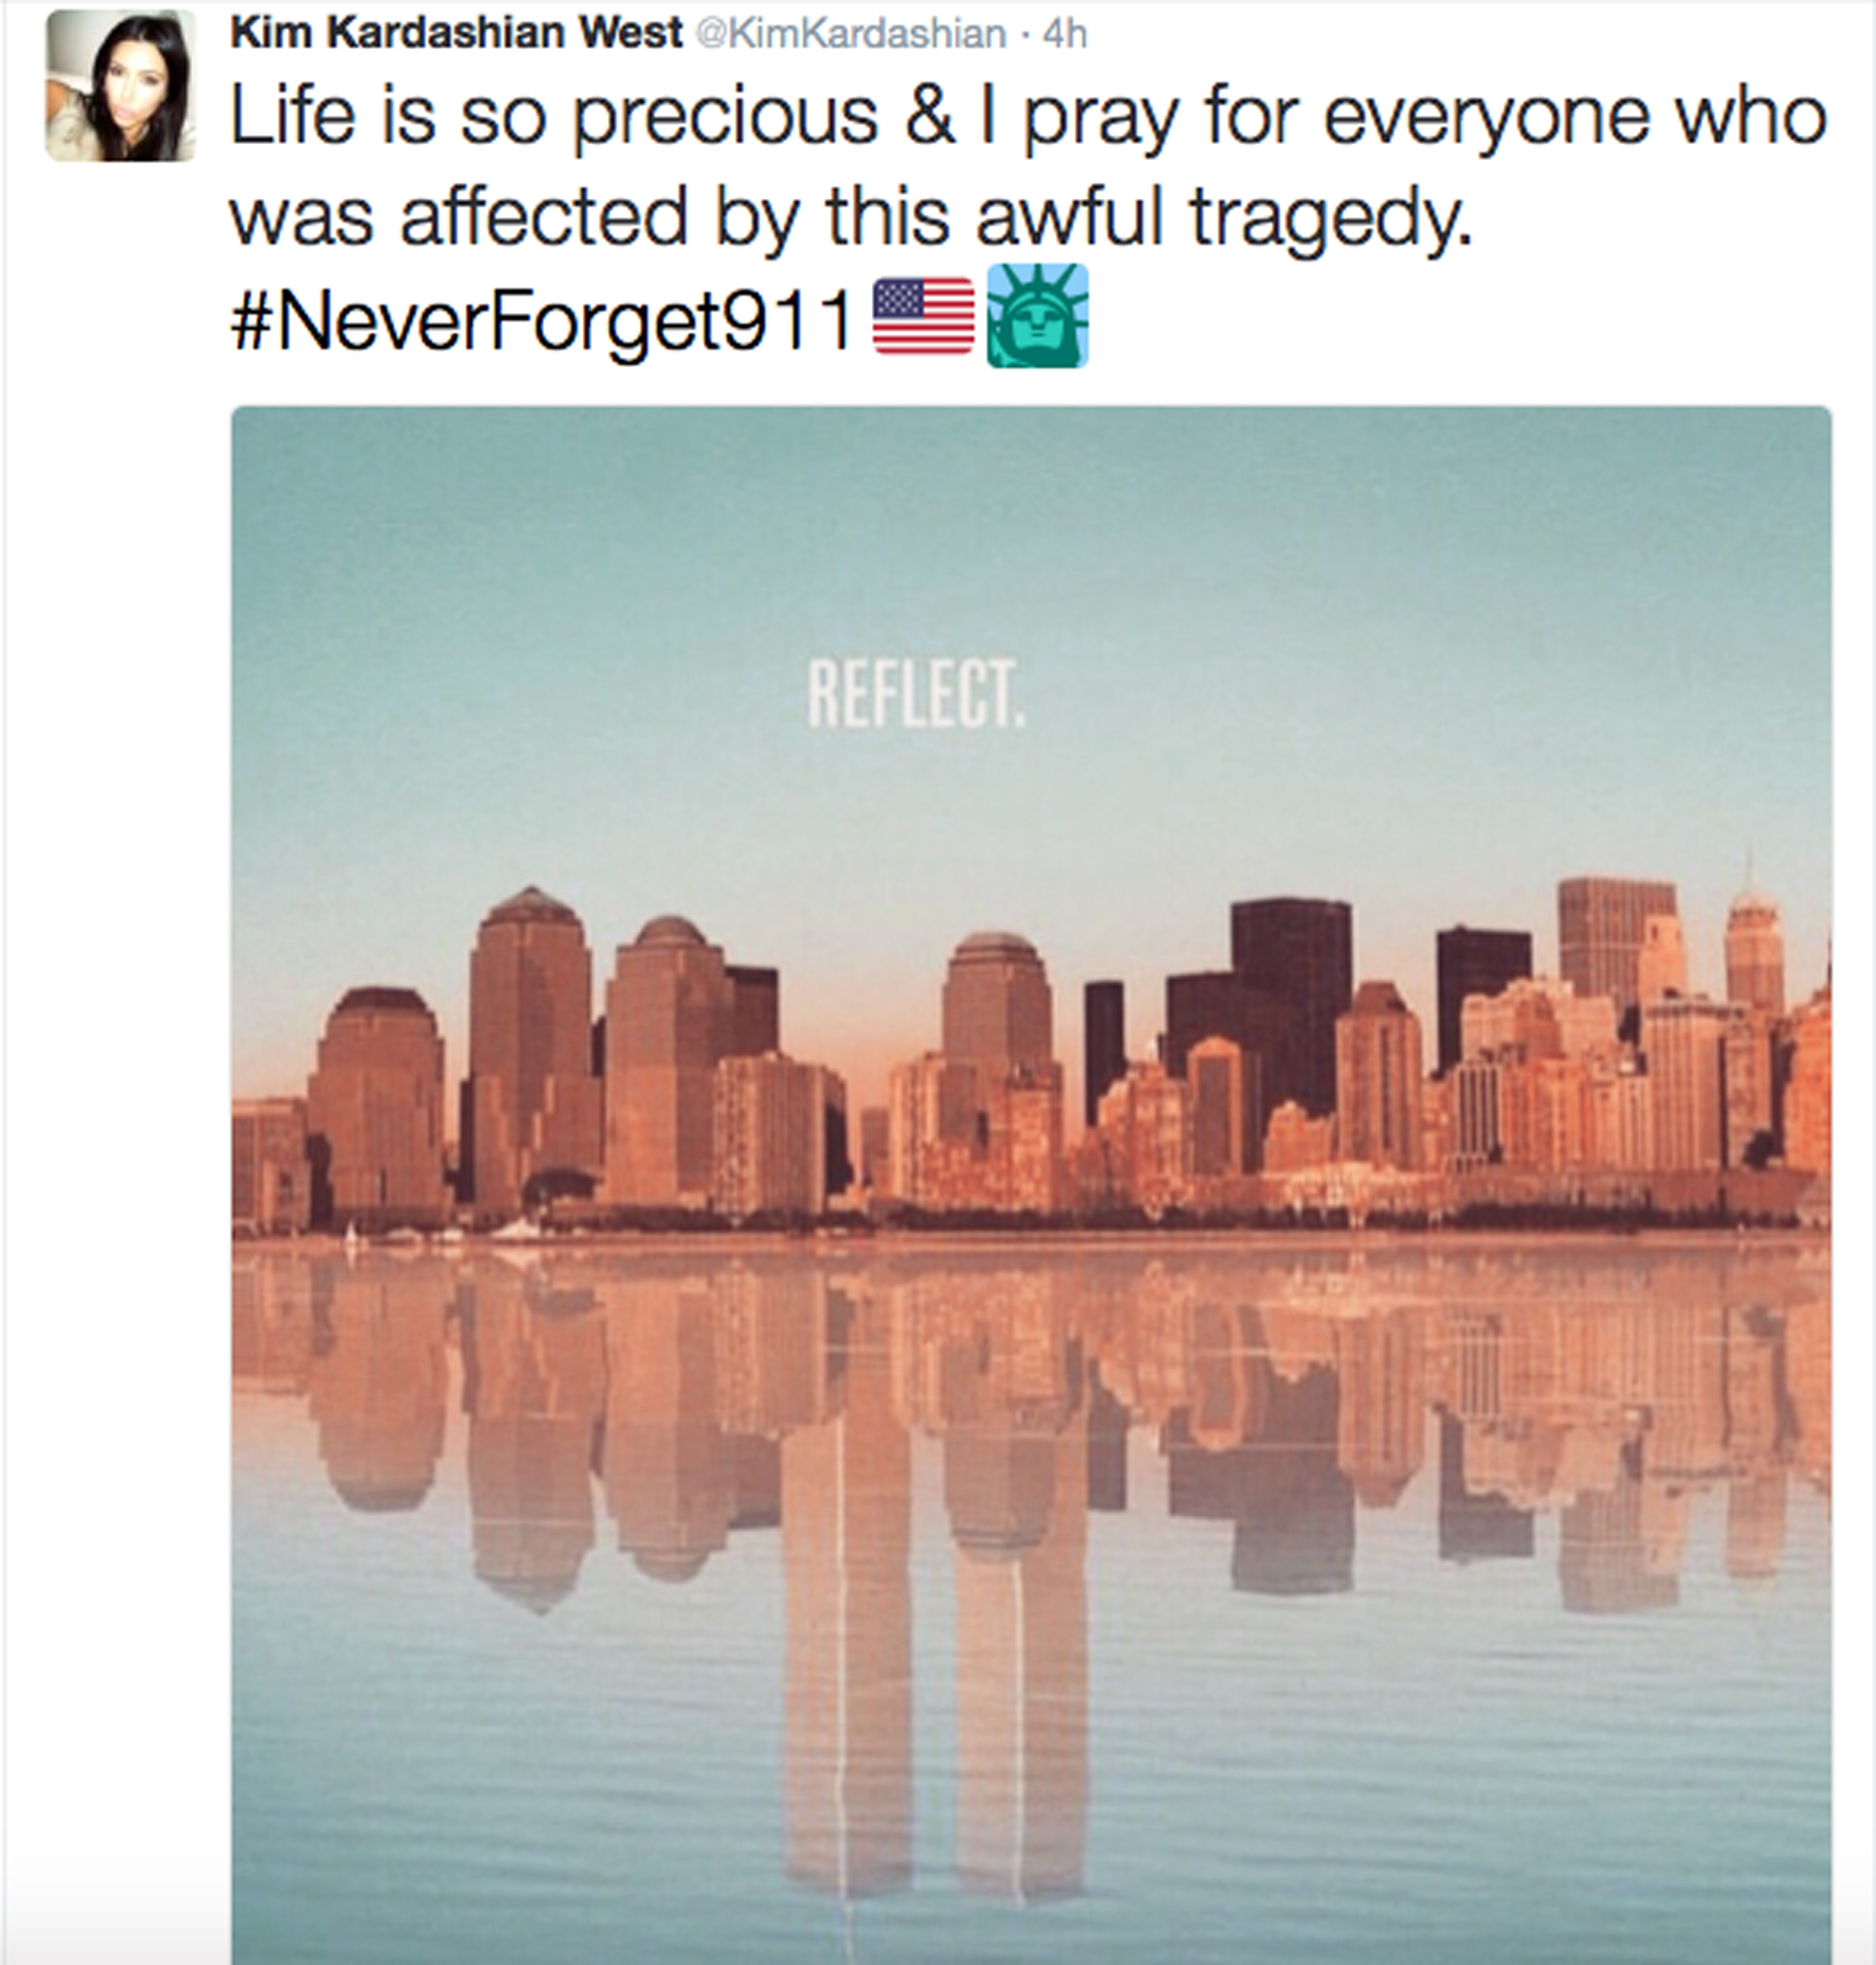 'We will never forget': Kim, Lady Gaga and Victoria Beckham lead 9/11 tributes